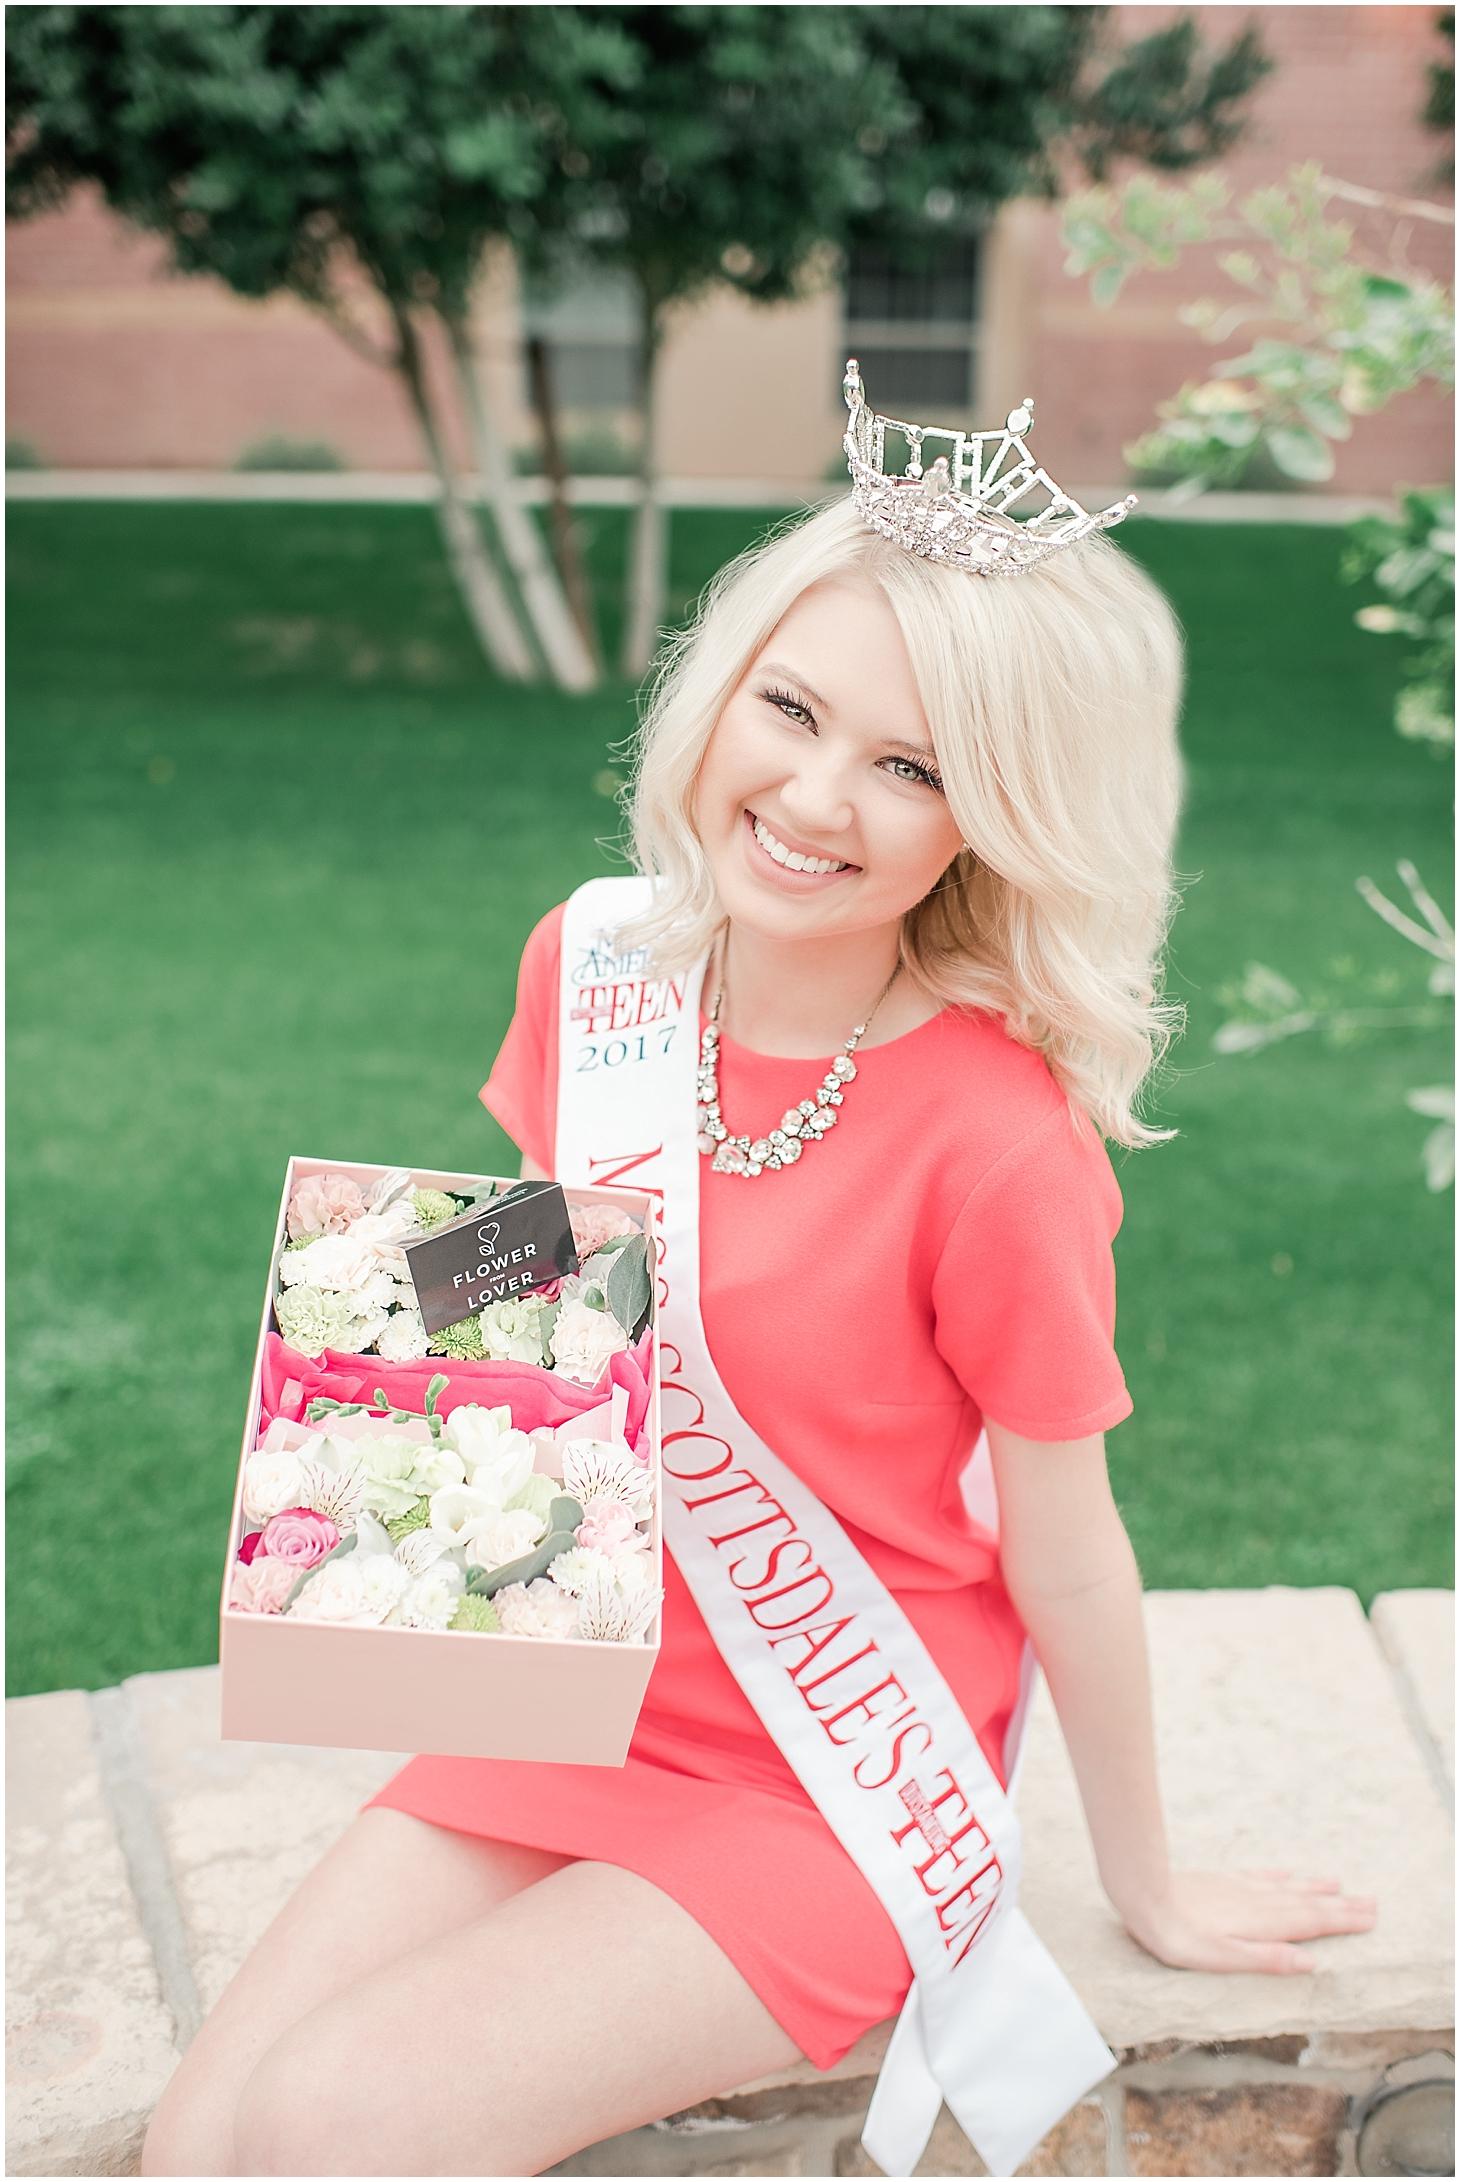 Beautiful box filled with an arrangement of lovely flowers and delicious French macarons made with love by Flower from Lower, and held by Miss Scottsdale's Outstanding Teen Alyssa Hart. Photo taken by Jade Min Photography.